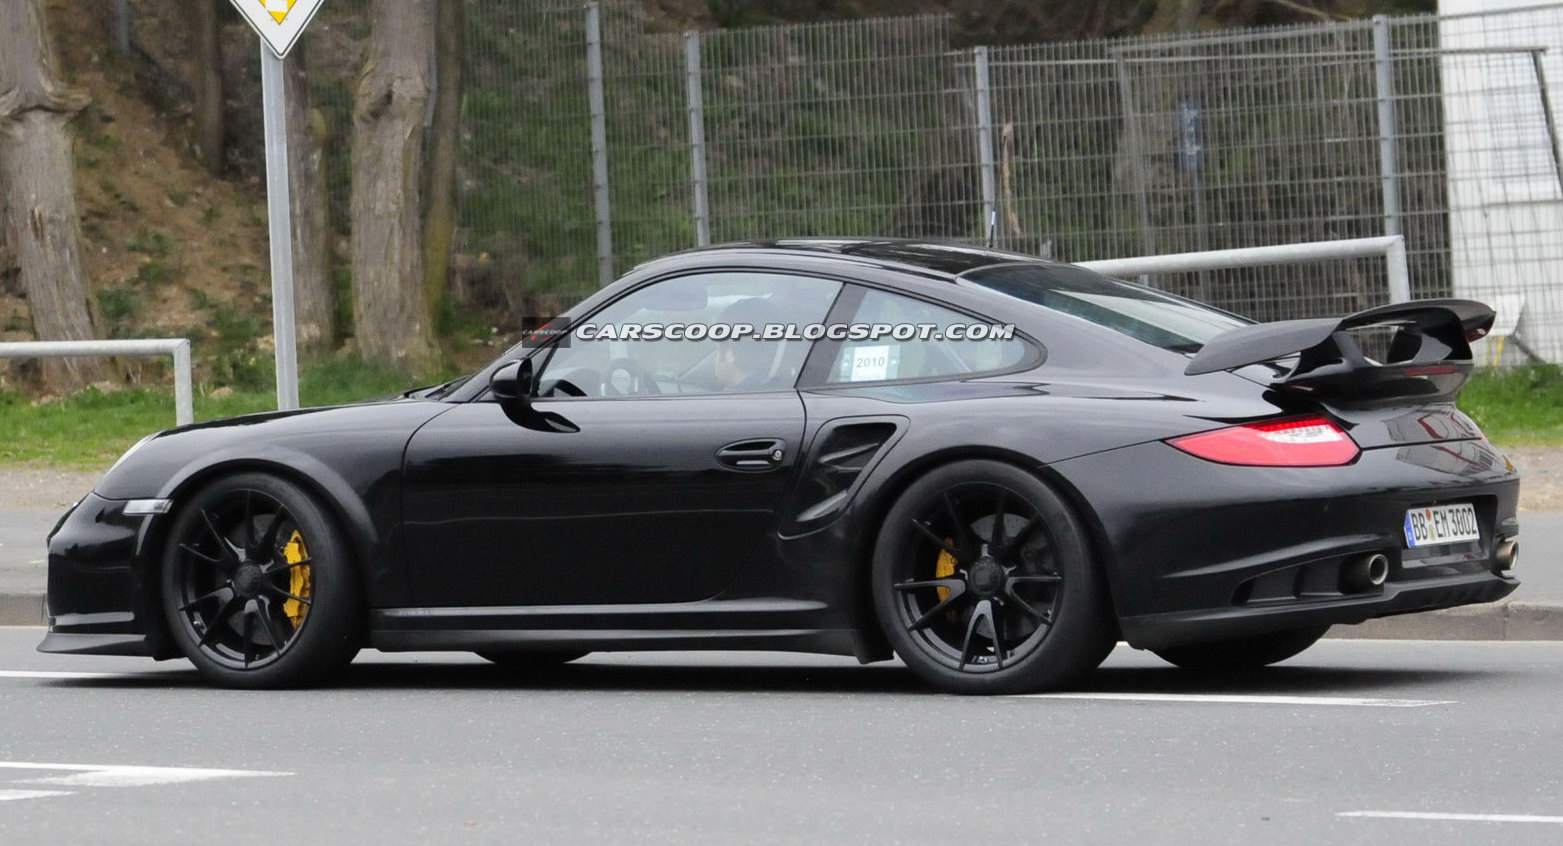 spy shots new hardcore porsche 911 gt2 rs could get 600hp. Black Bedroom Furniture Sets. Home Design Ideas